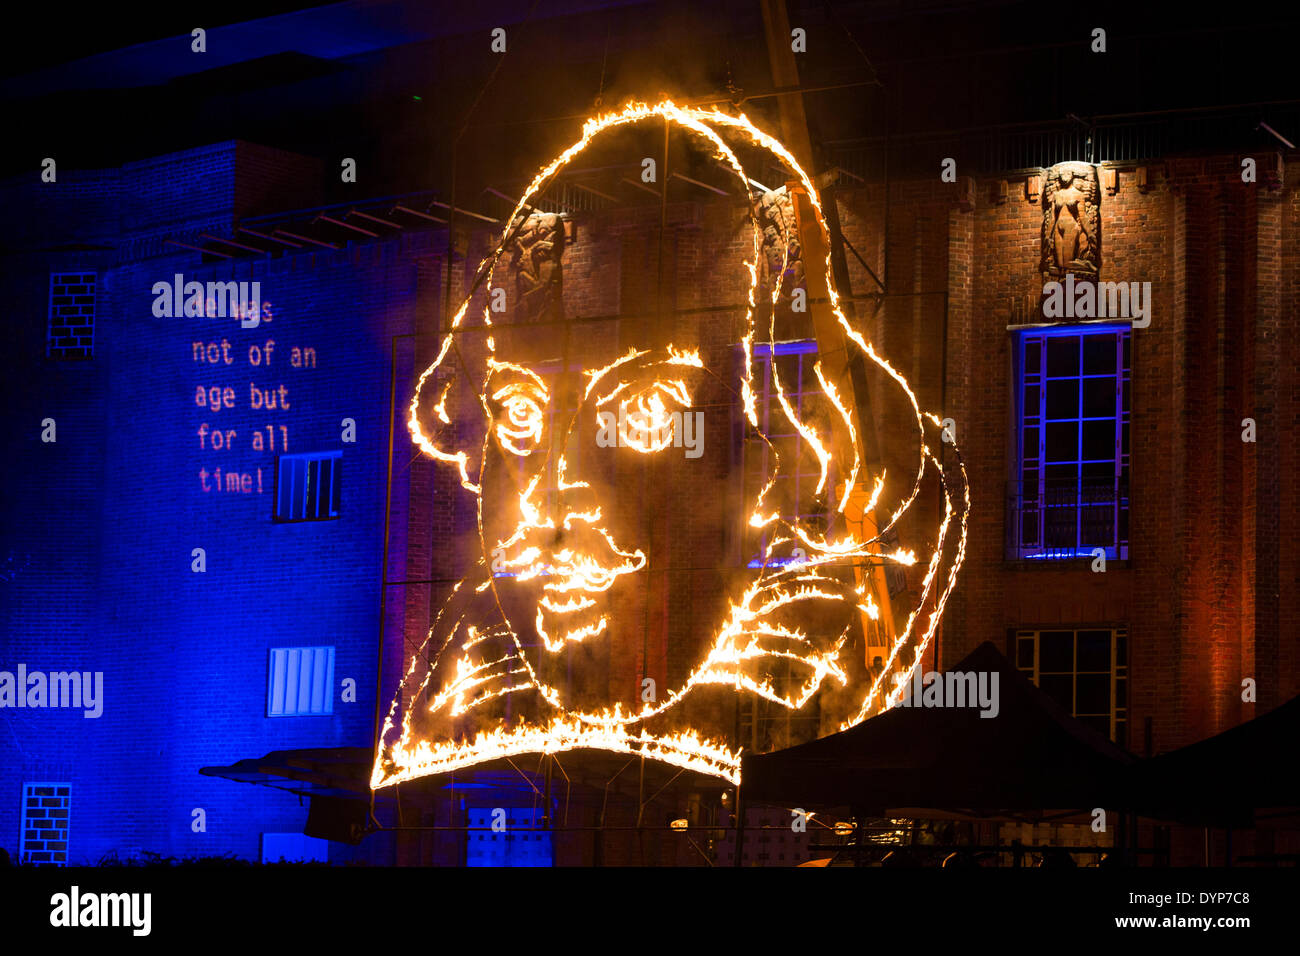 Stratford upon Avon, UK. 23rd April 2014. A firework display at the Royal Shakespeare Theatre in Stratford-Upon-Avon begins the celebrations for William Shakespeare's 450th birthday anniversary. The display culminated in a flaming portrait in front of the theatre. Credit:  Andrew Fox/Alamy Live News - Stock Image